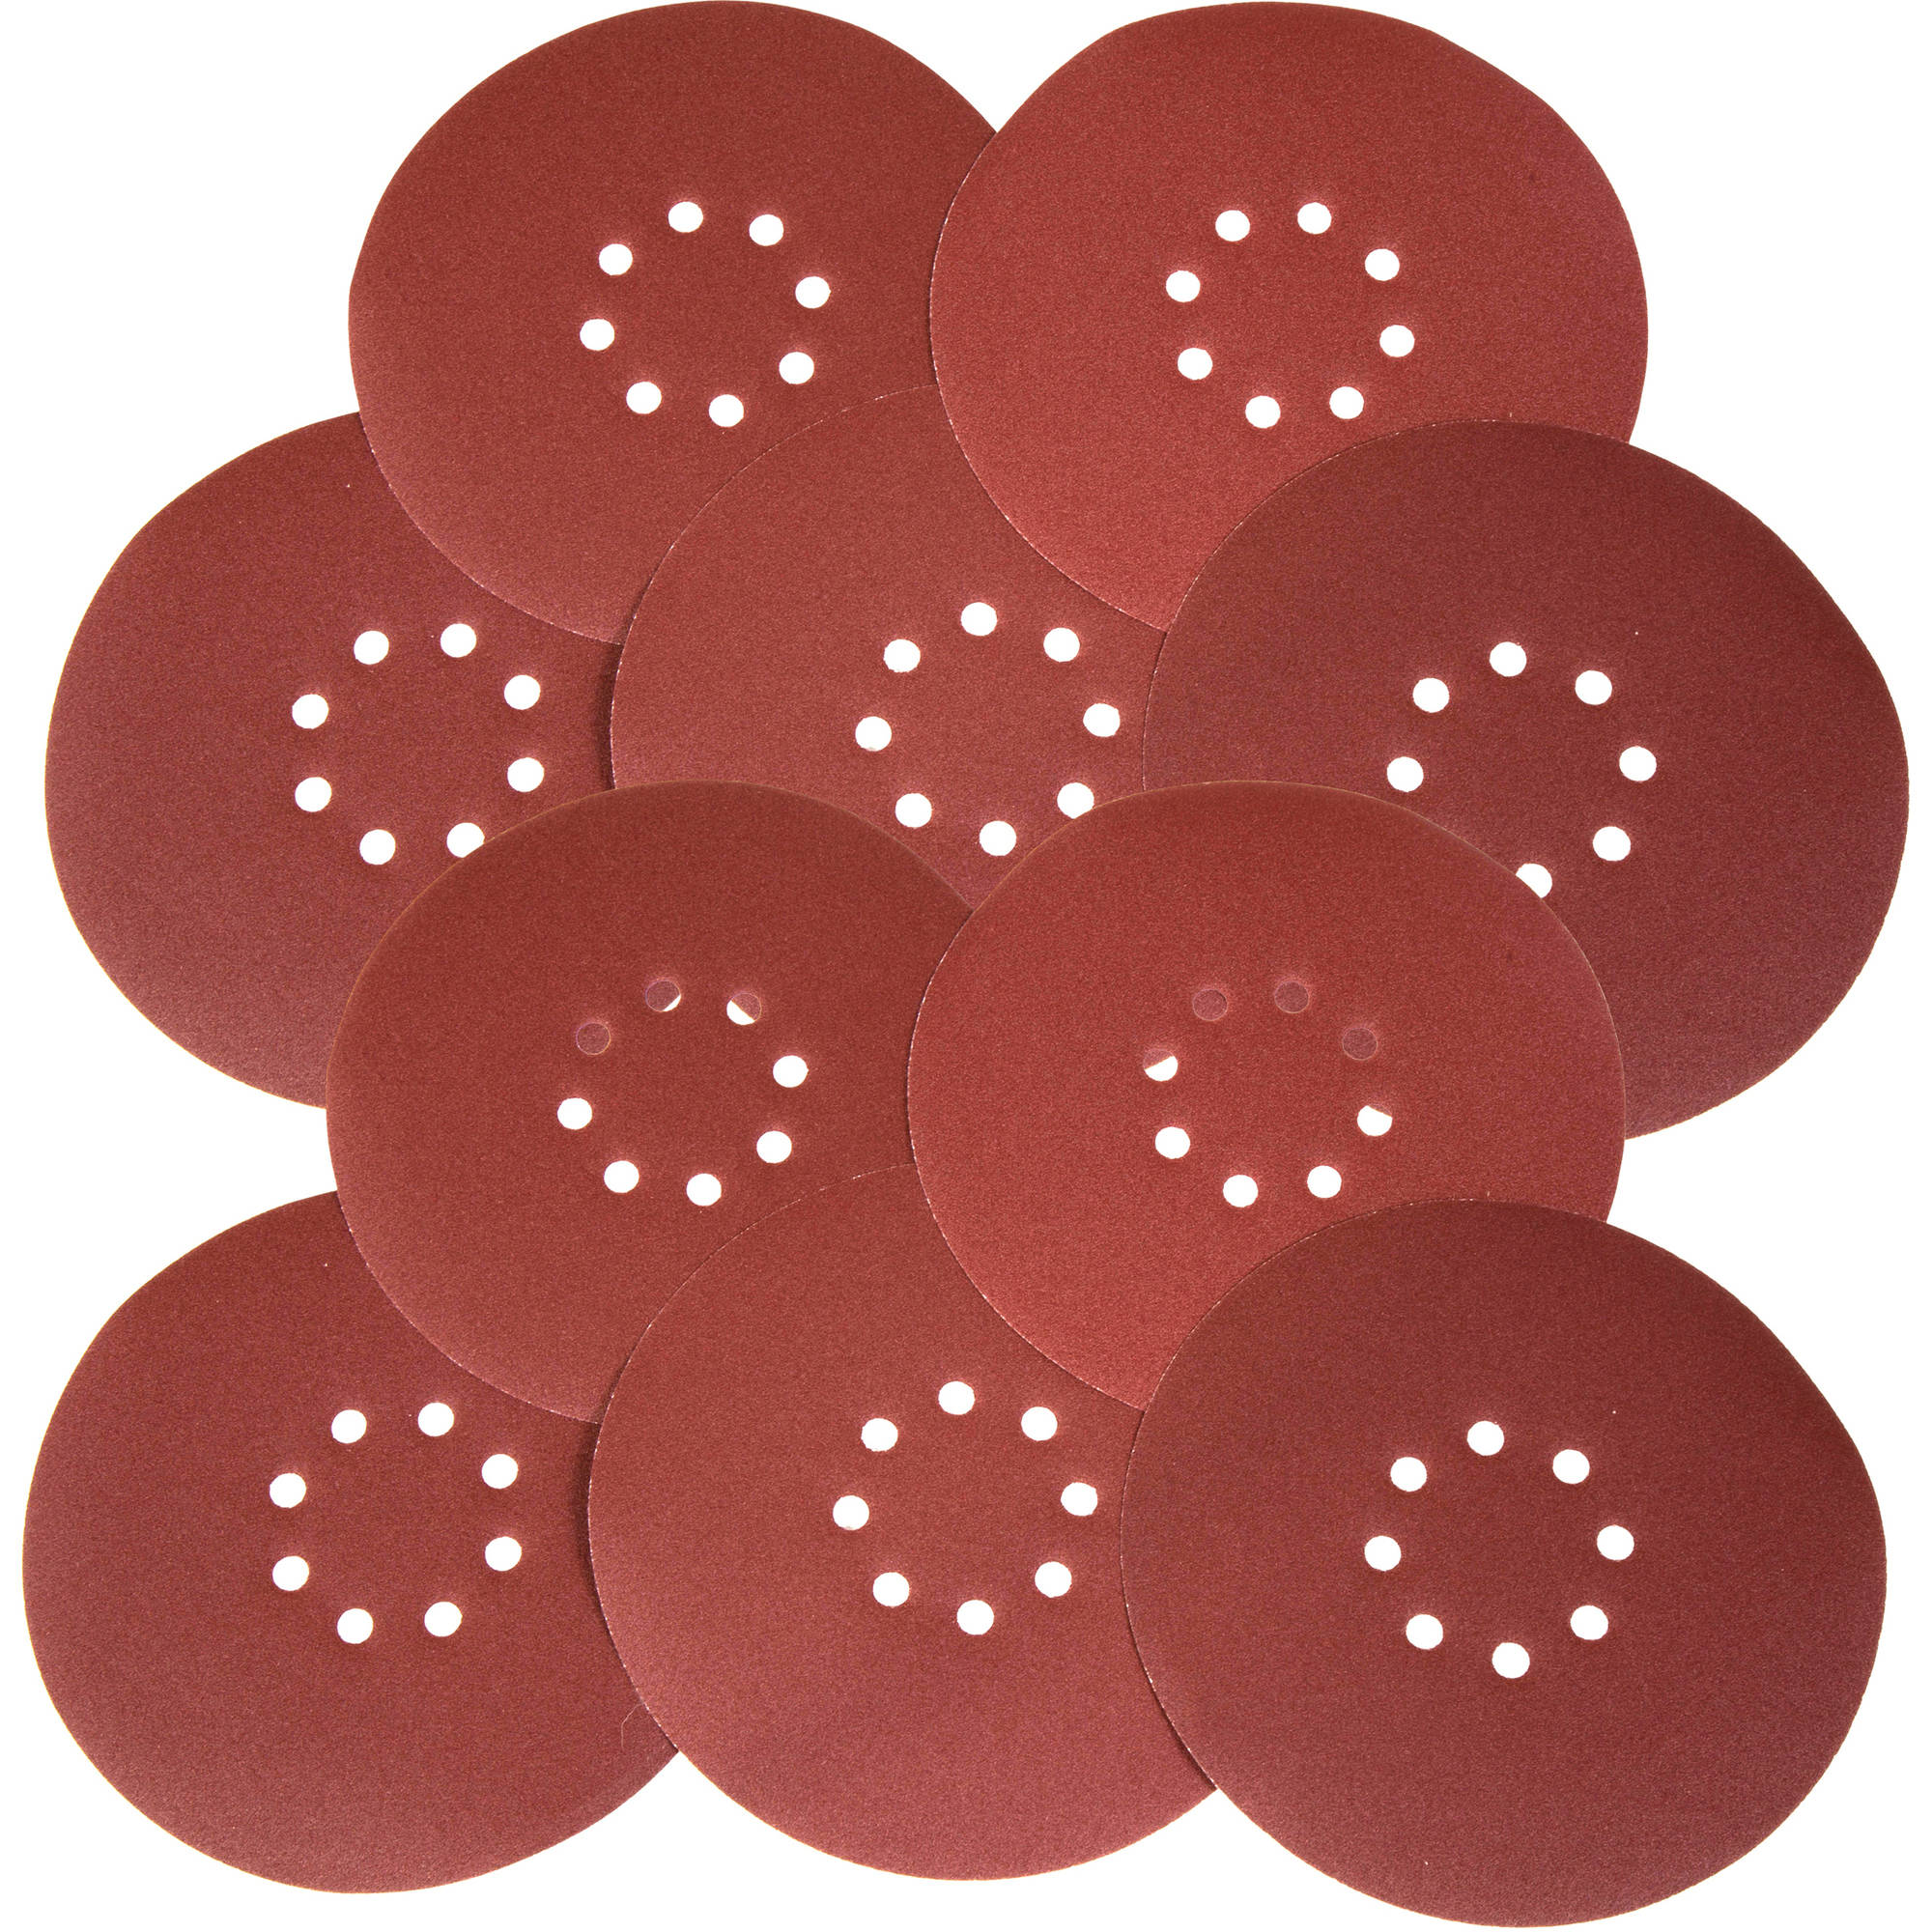 WEN Drywall Sander 60-Grit Hook And Loop 9-Inch Sandpaper, Pack Of 10